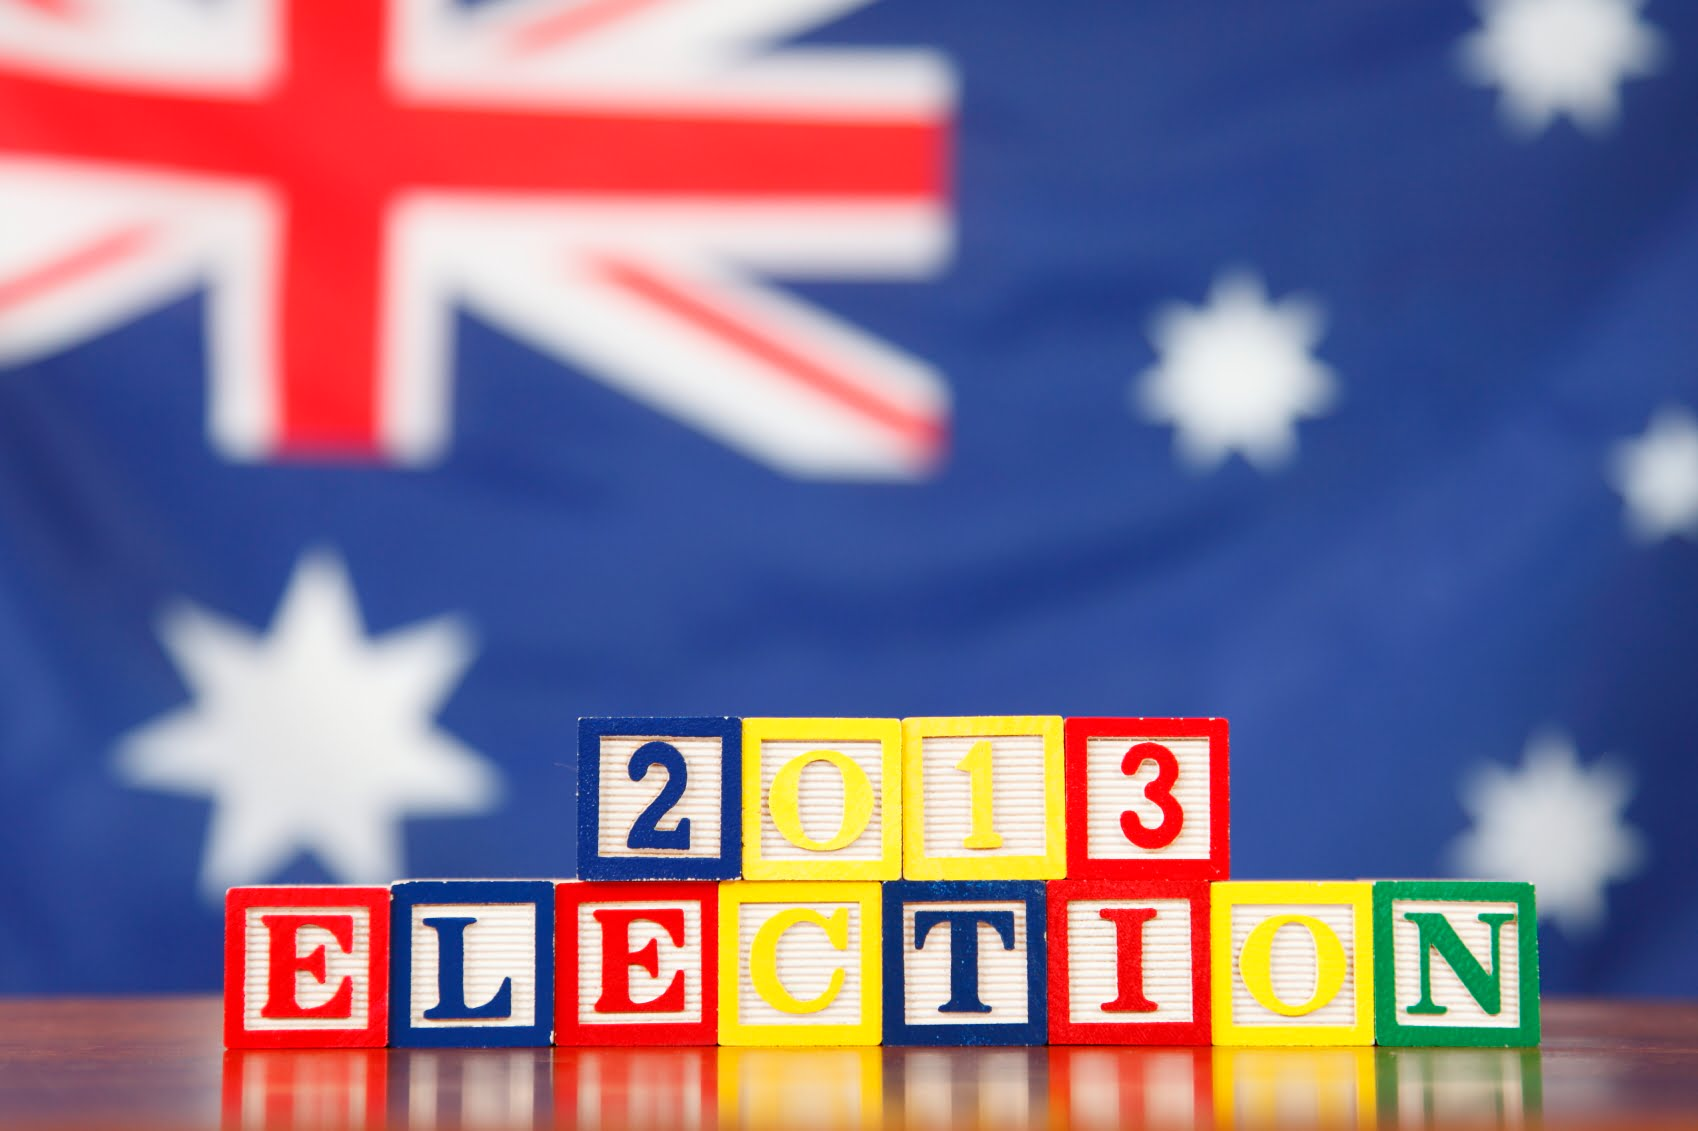 A Fork In The Road For Australia: A Look At The 2013 Elections